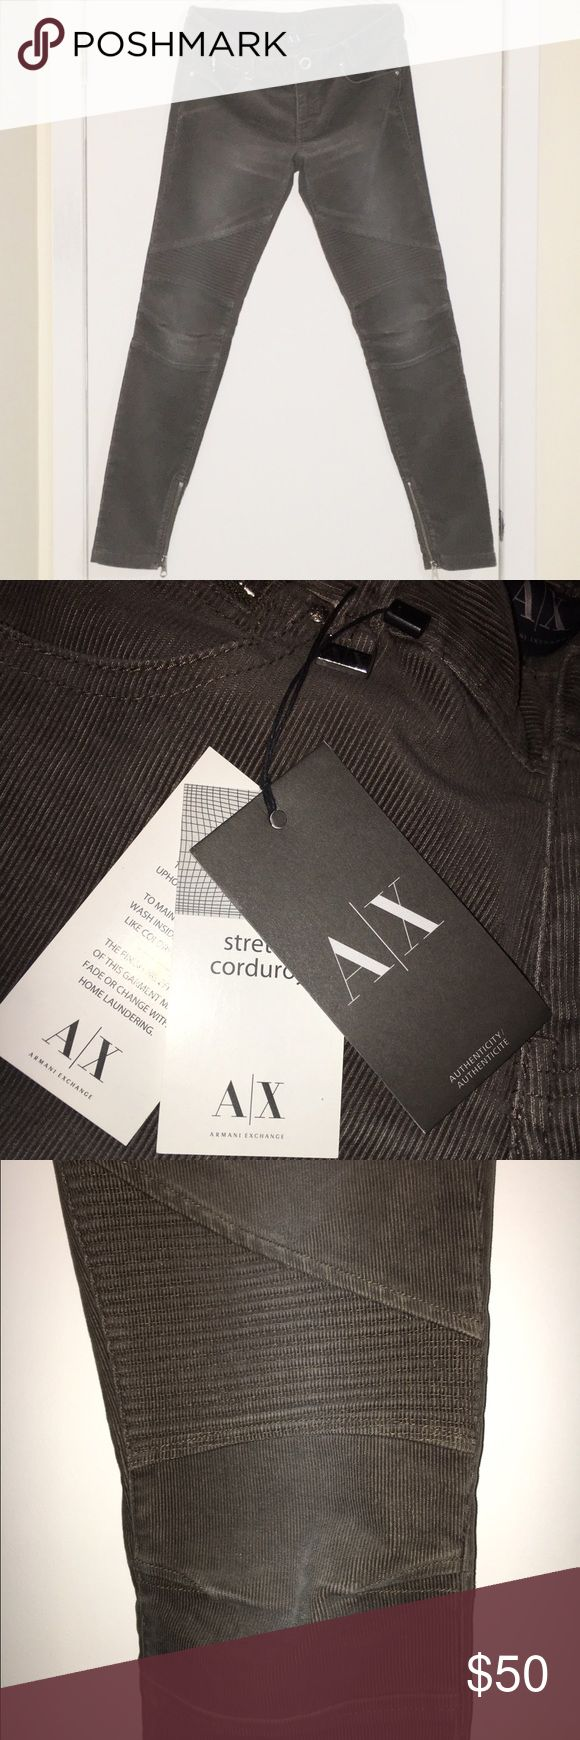 Armani Exchange Corduroy Stretch Moto Pants ✔️NWT ✔️Grey/Olive Color  ✔️Moto Style with design on lower thigh/knee area  ✔️Zippers at ankle ✔️Snap Closure at waist A/X Armani Exchange Pants Skinny